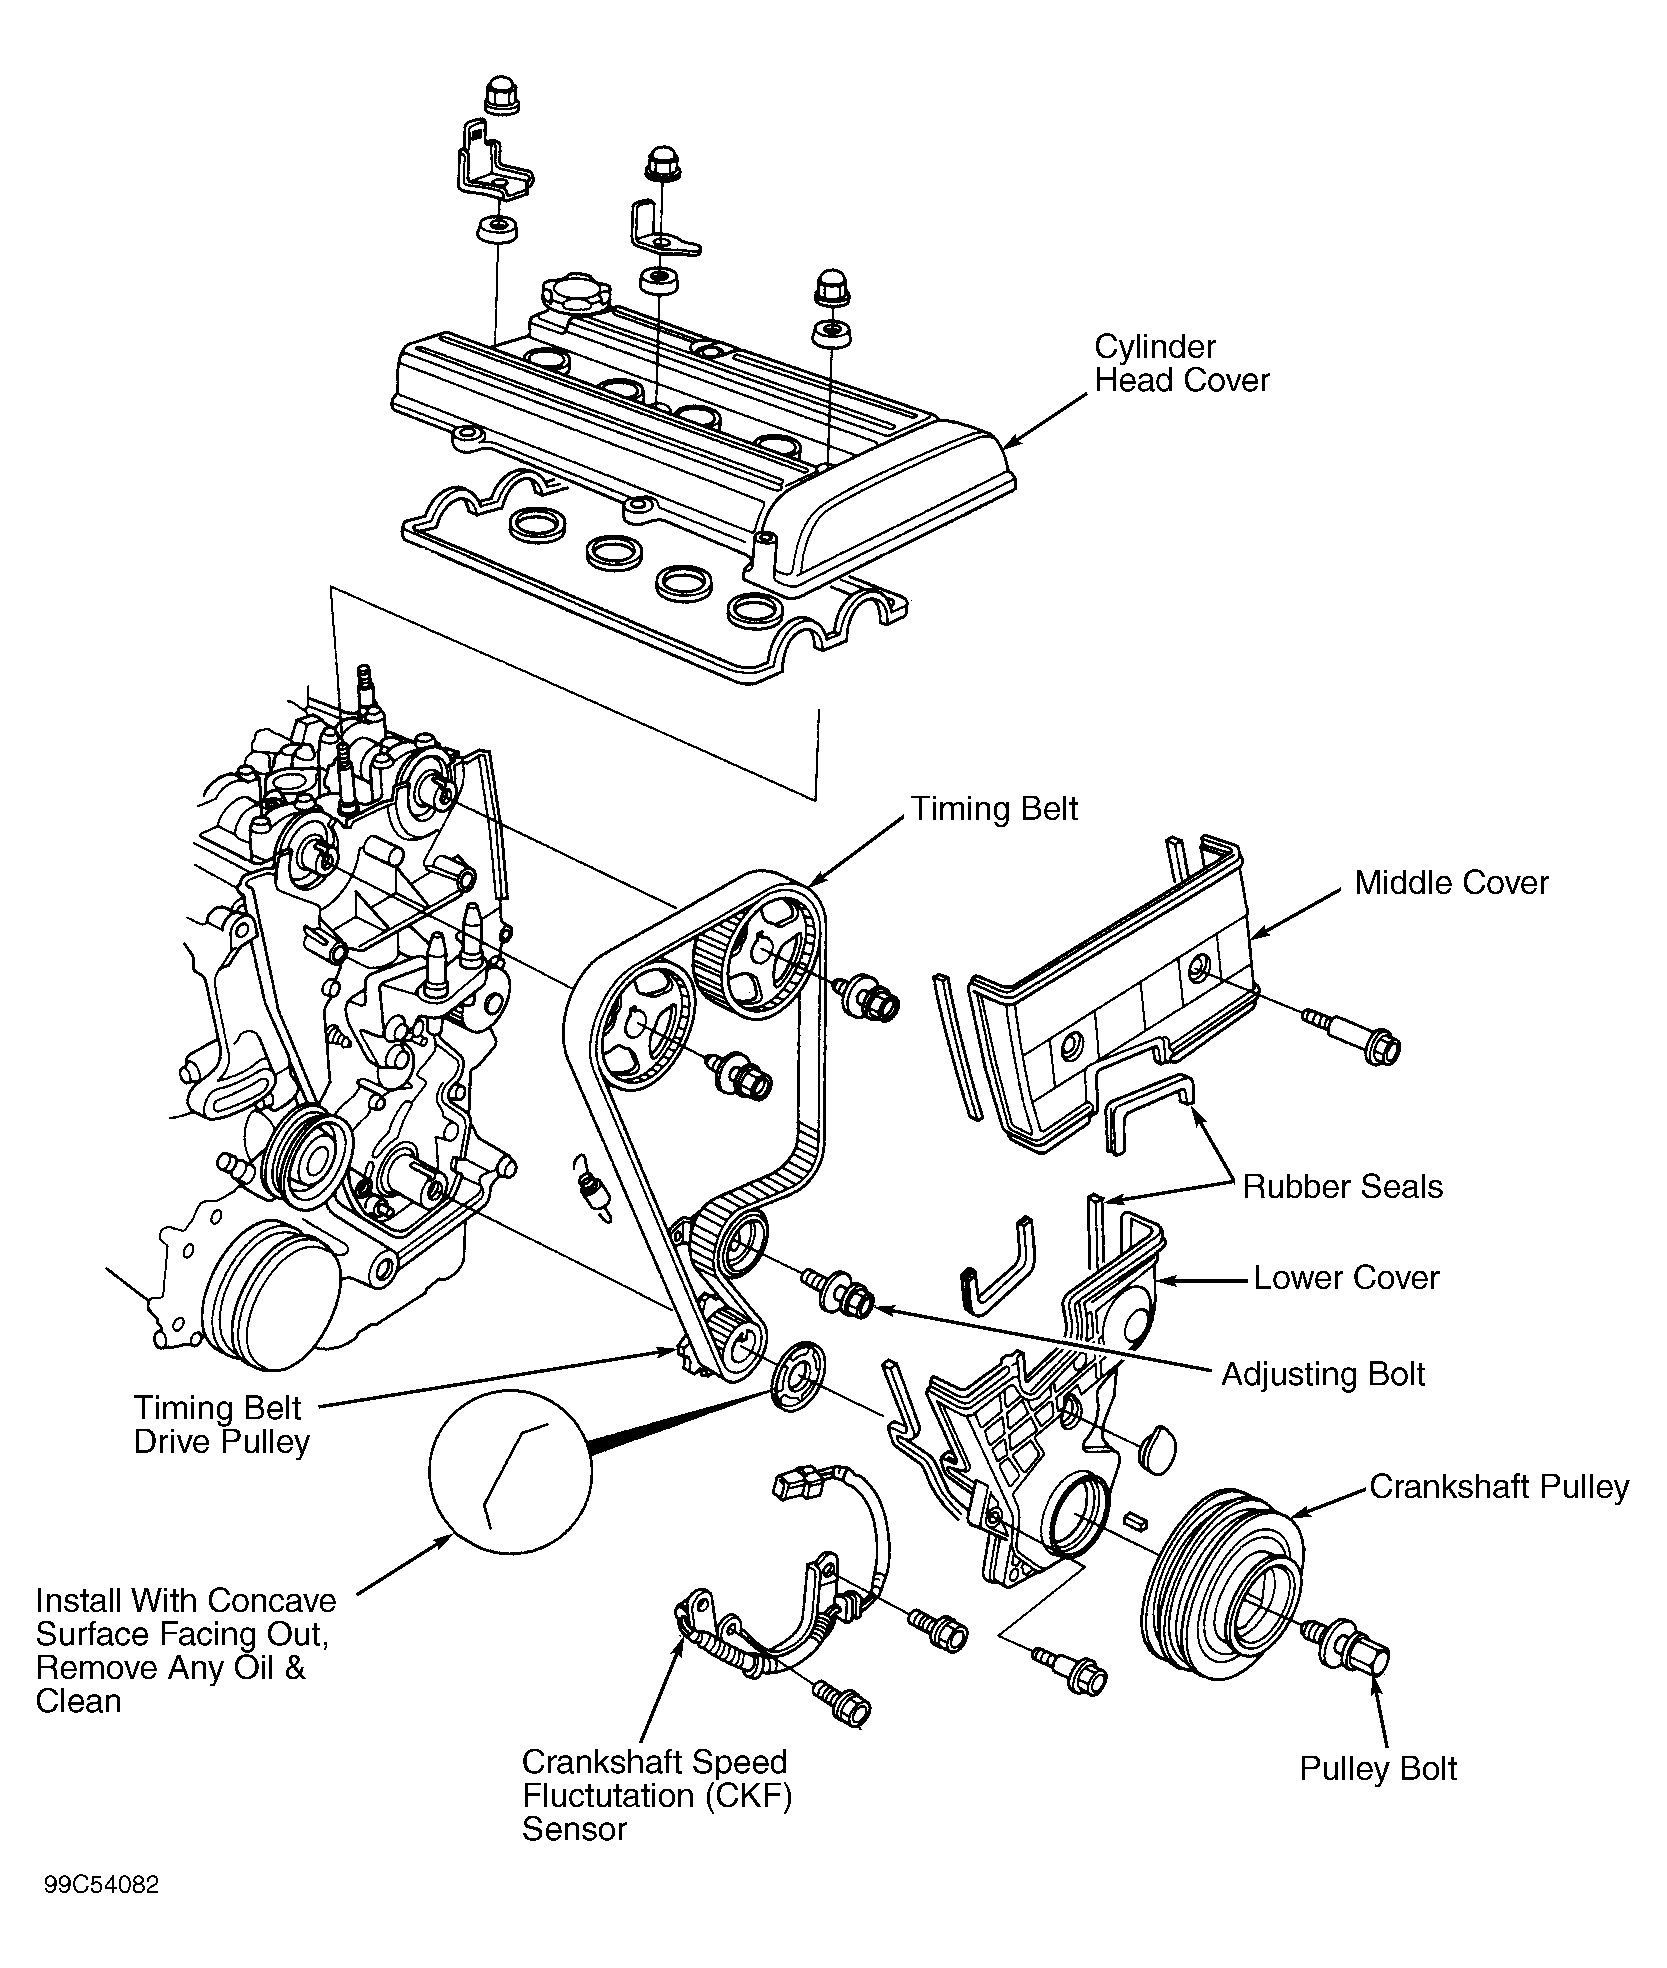 Honda Crv Engine Diagram Wiring Diagram 2003 Ford Excursion Engine Diagram 2003 Honda Crv Engine Diagram 4 Honda Crv Ford Excursion Honda